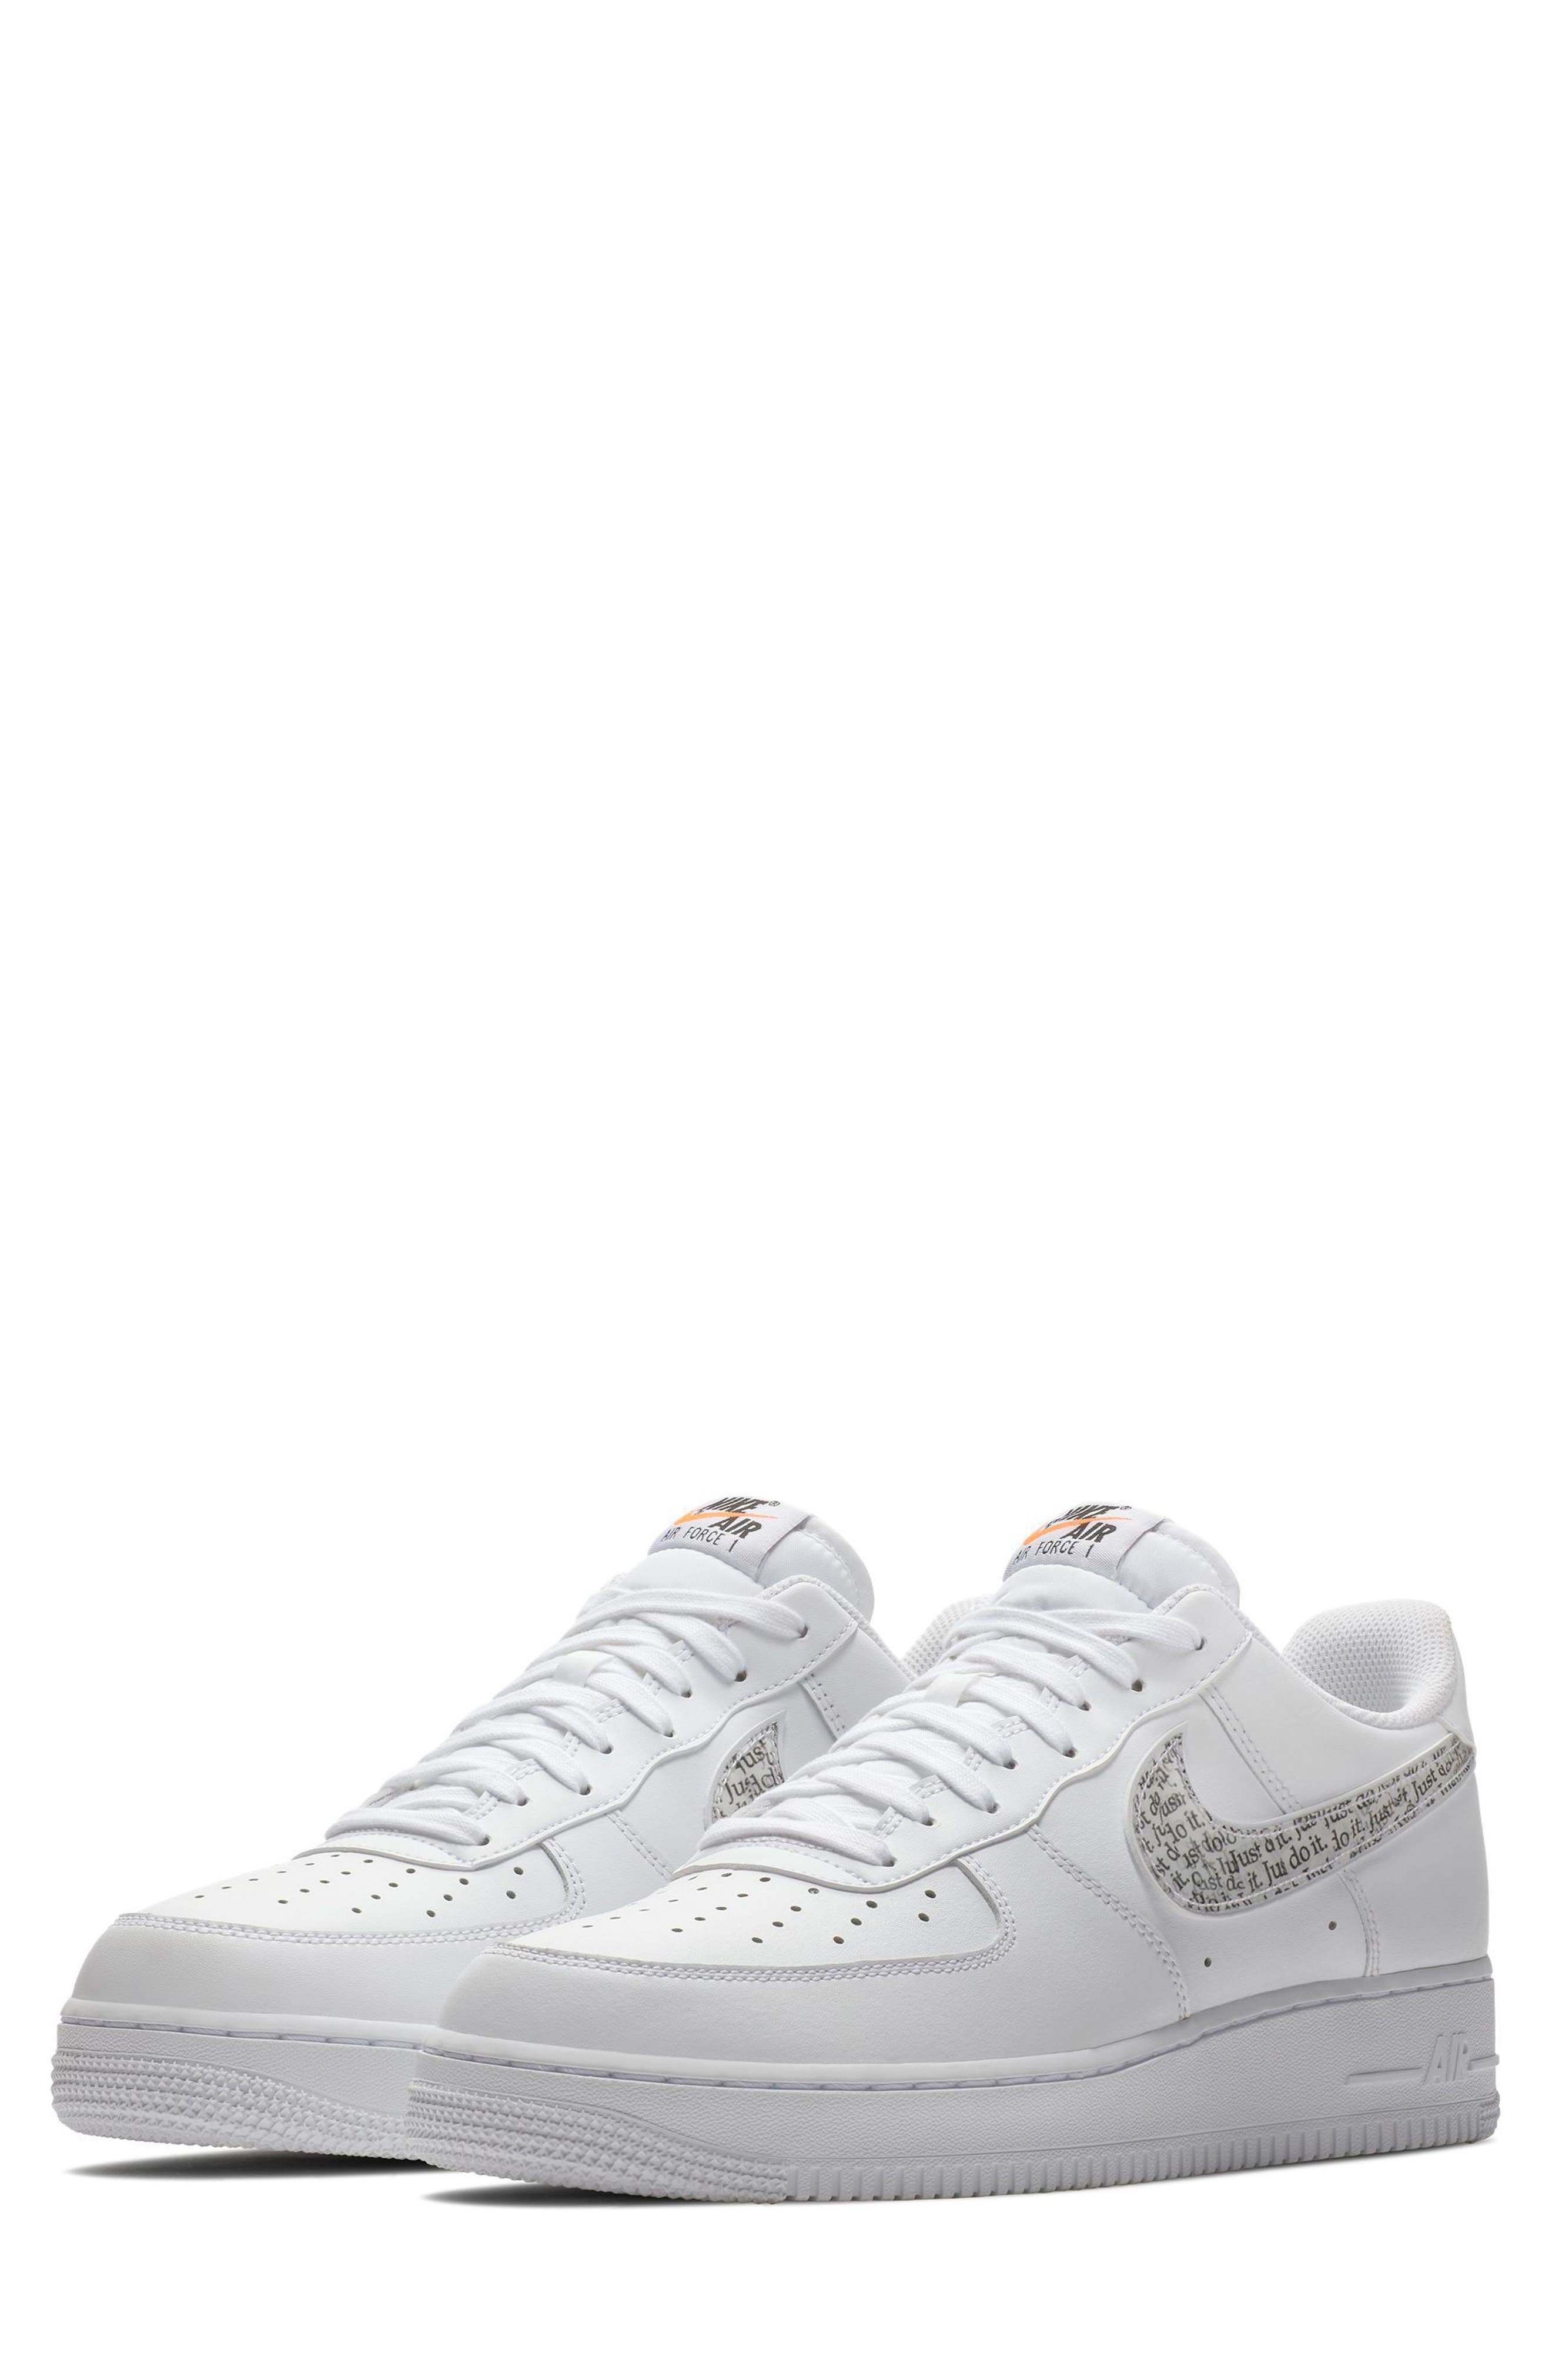 Air Force 1 '07 LV8 Just Do It Sneaker,                         Main,                         color, 100